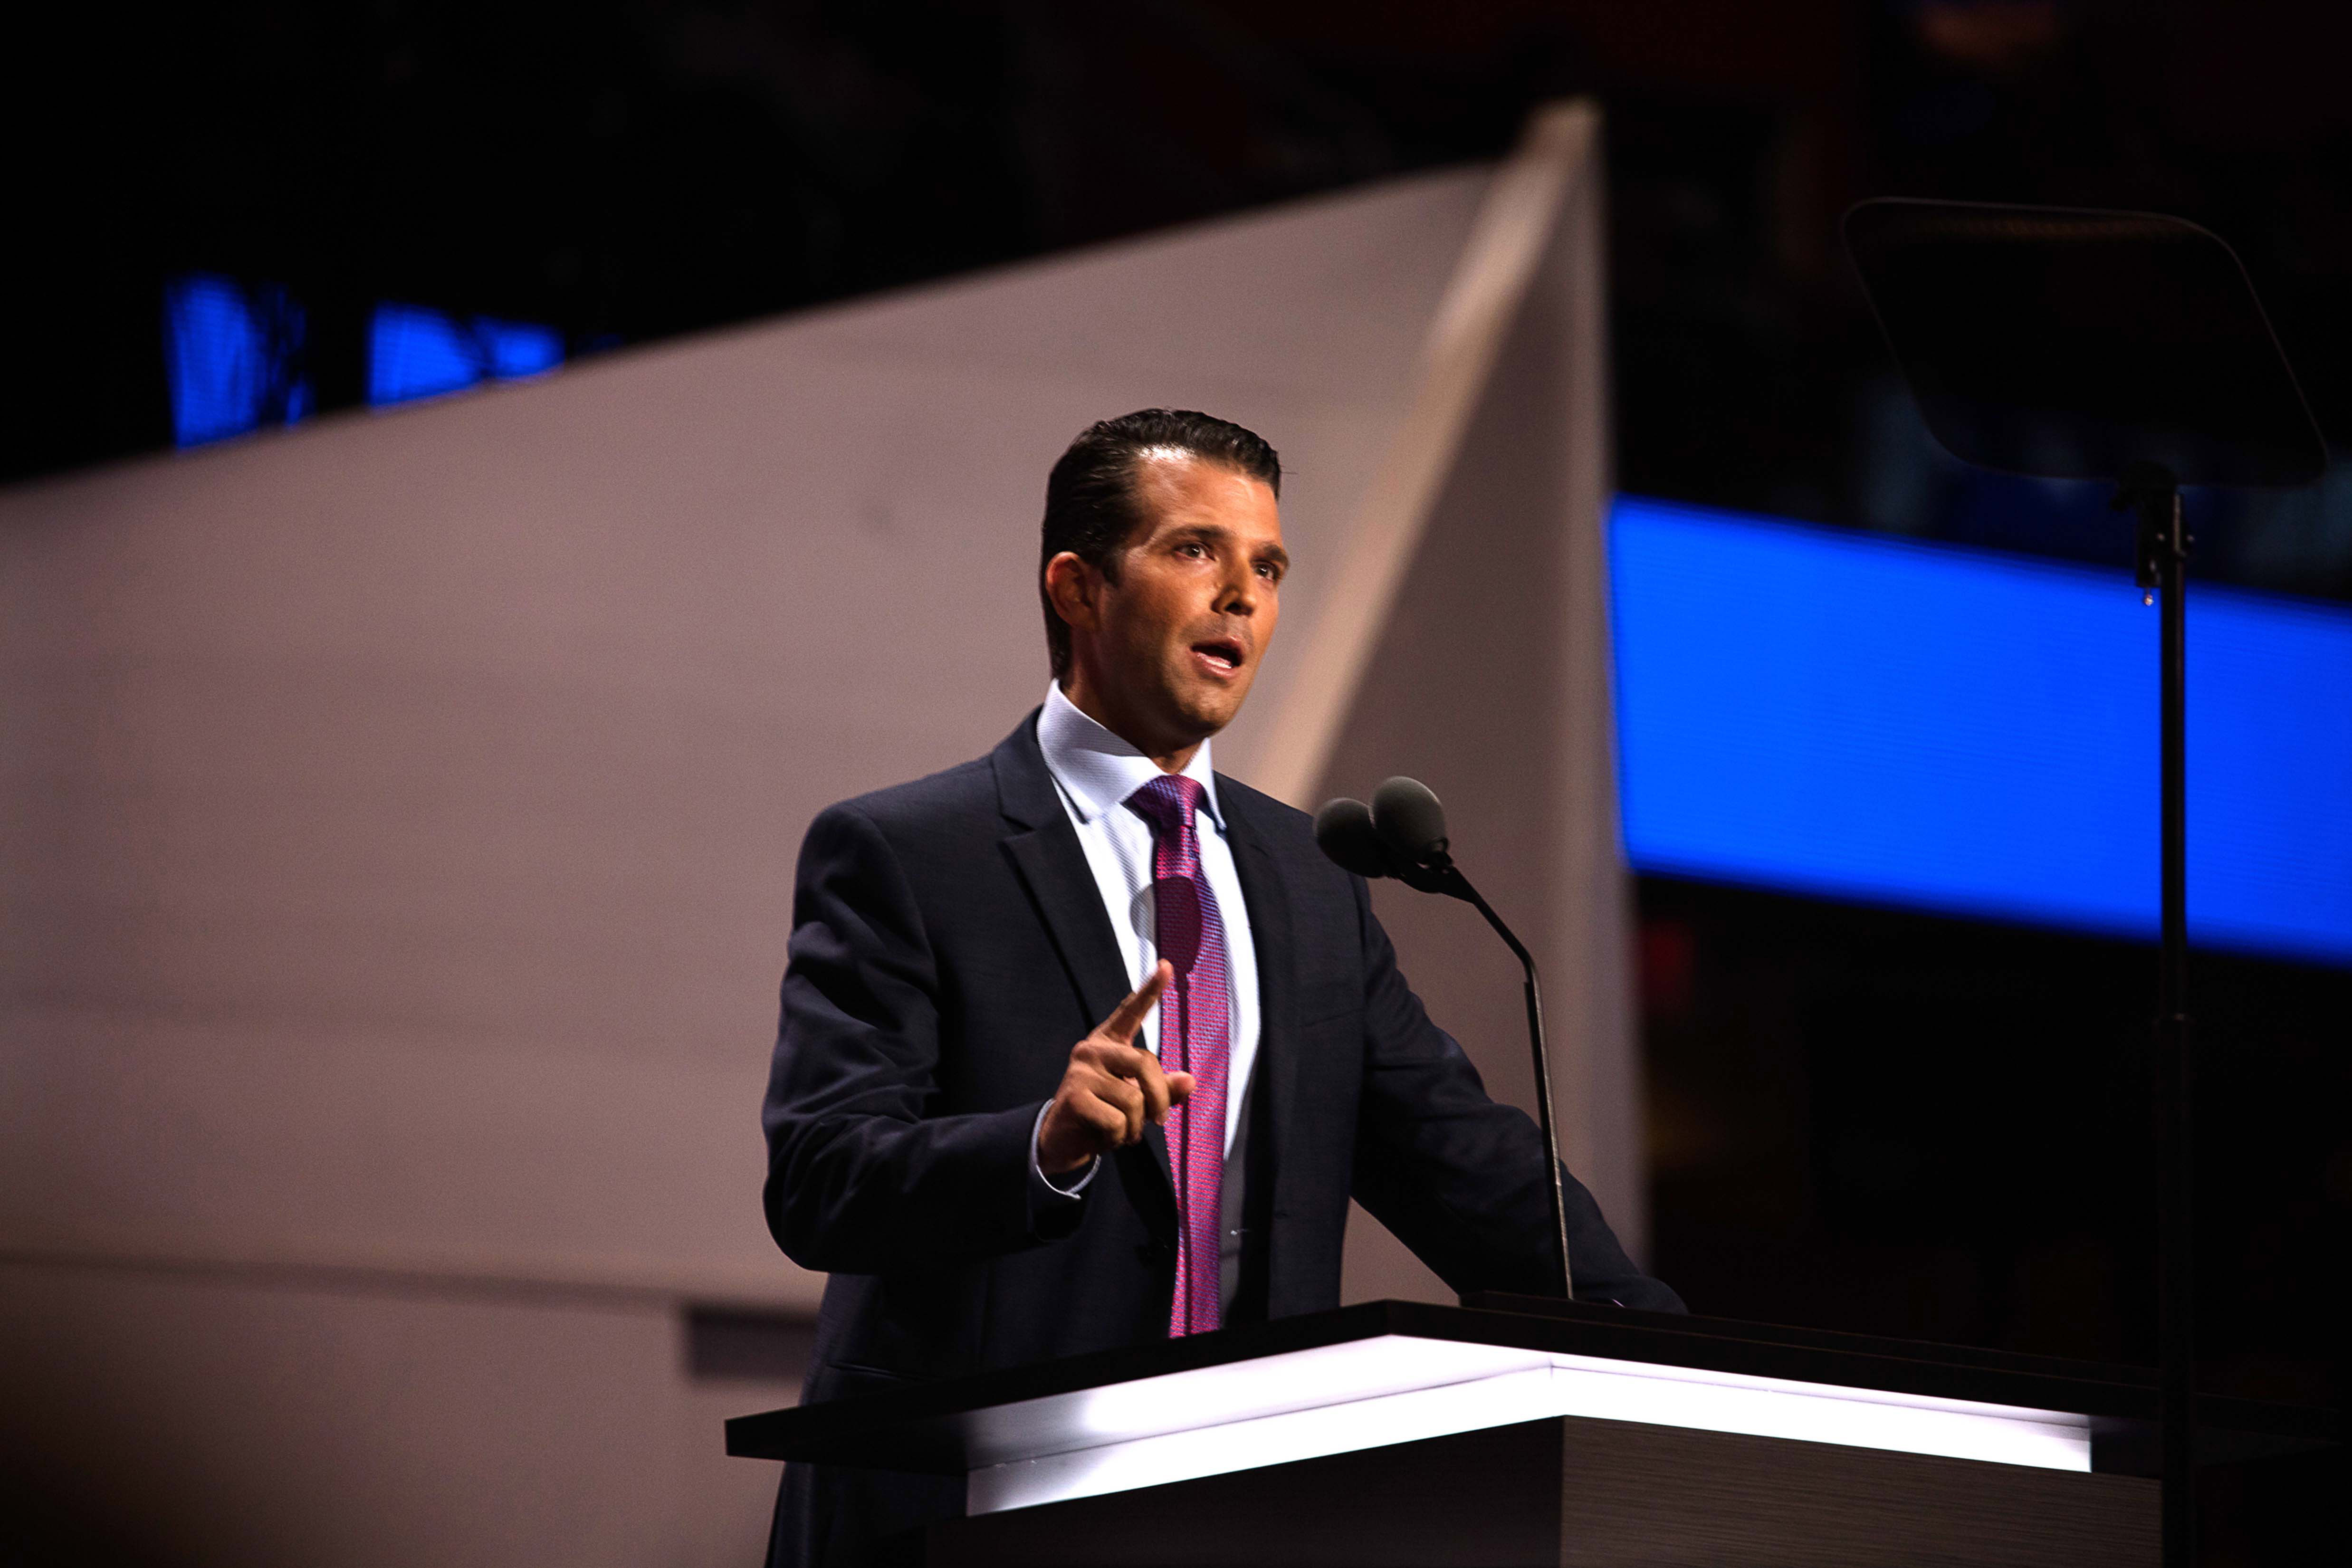 View of Donald Trump Jr, one of candidate Trump's sons, as he speaks from the podium during the Republican National Convention at Quicken Loans Arena, Cleveland, Ohio, July 19, 2016.